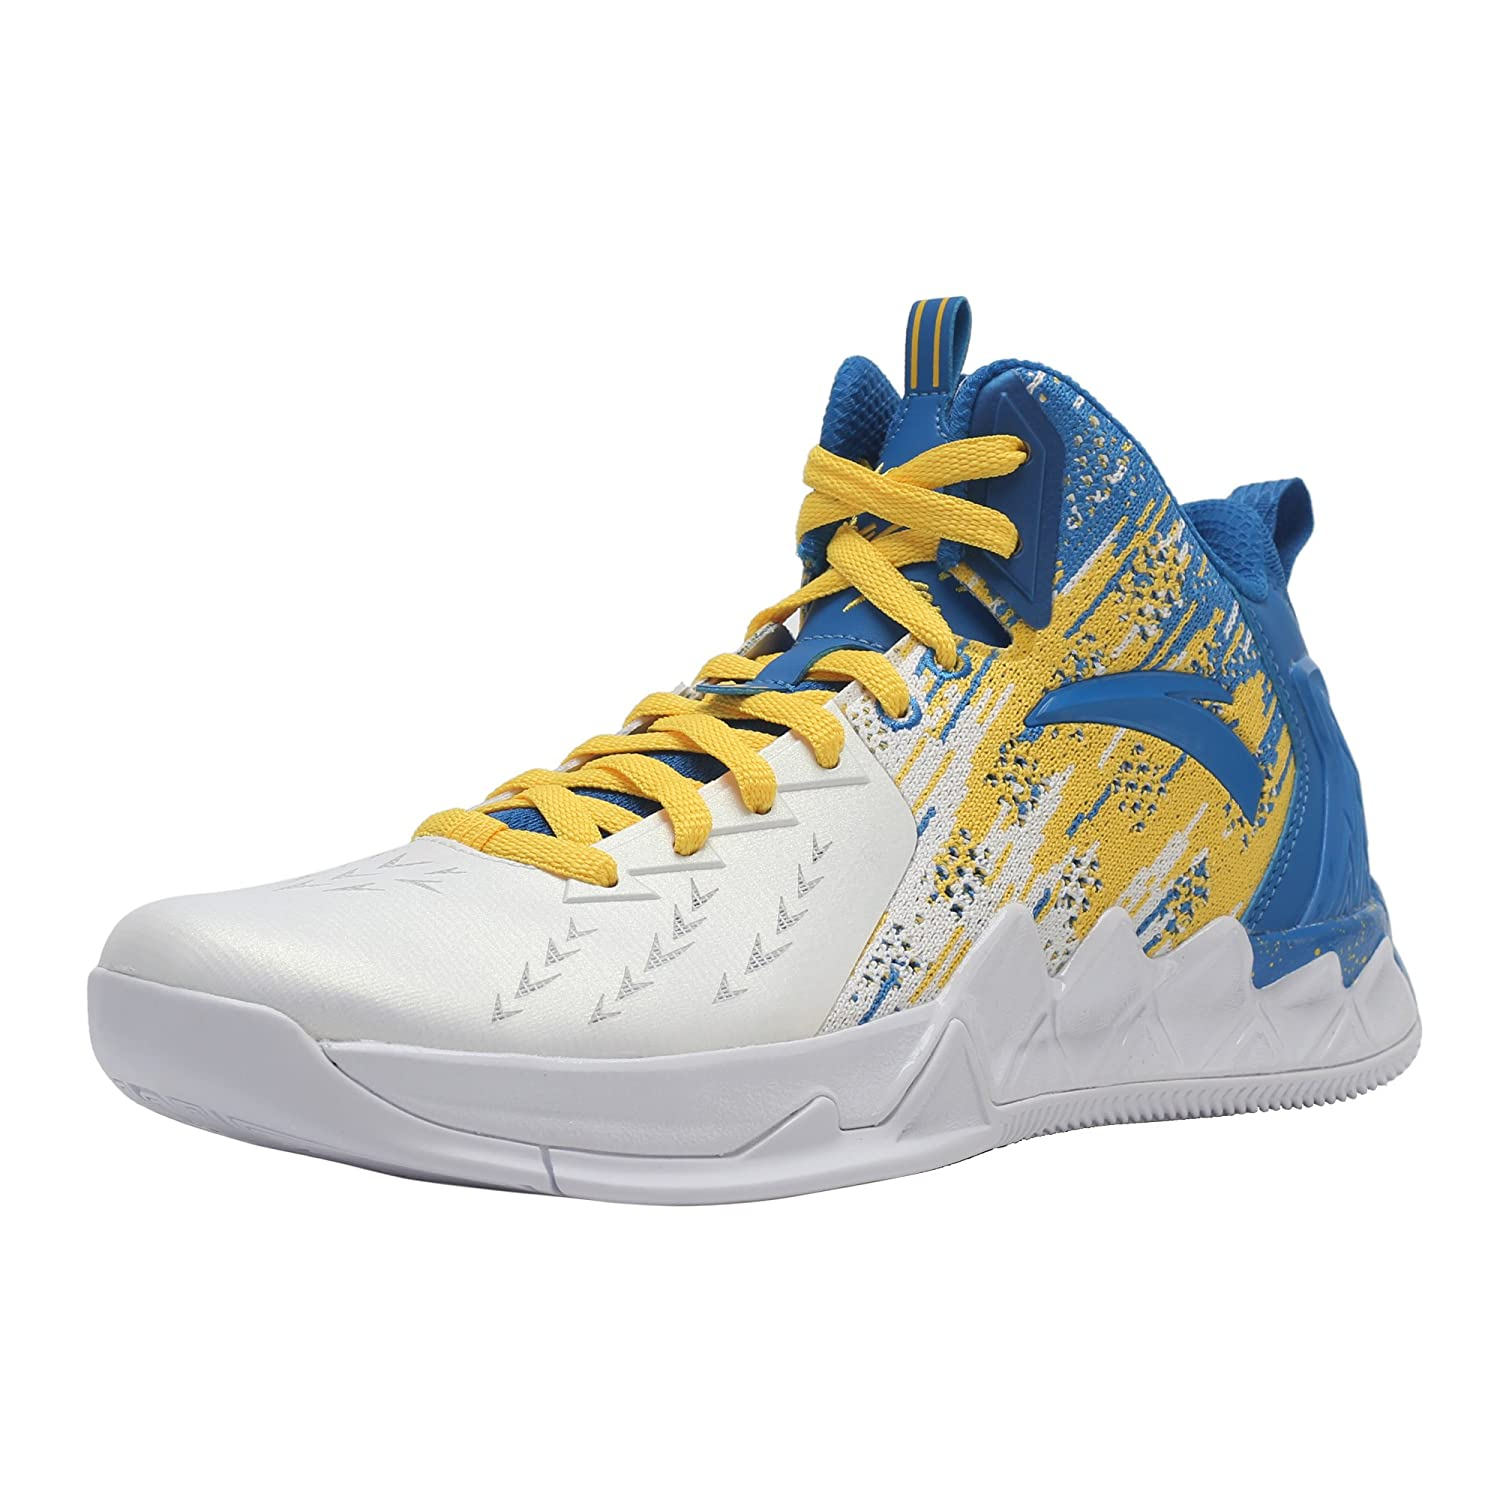 ANTA メンズ B073VG783M 11 D(M) US Kt2-post Home-white/Royal Blue/Yellow